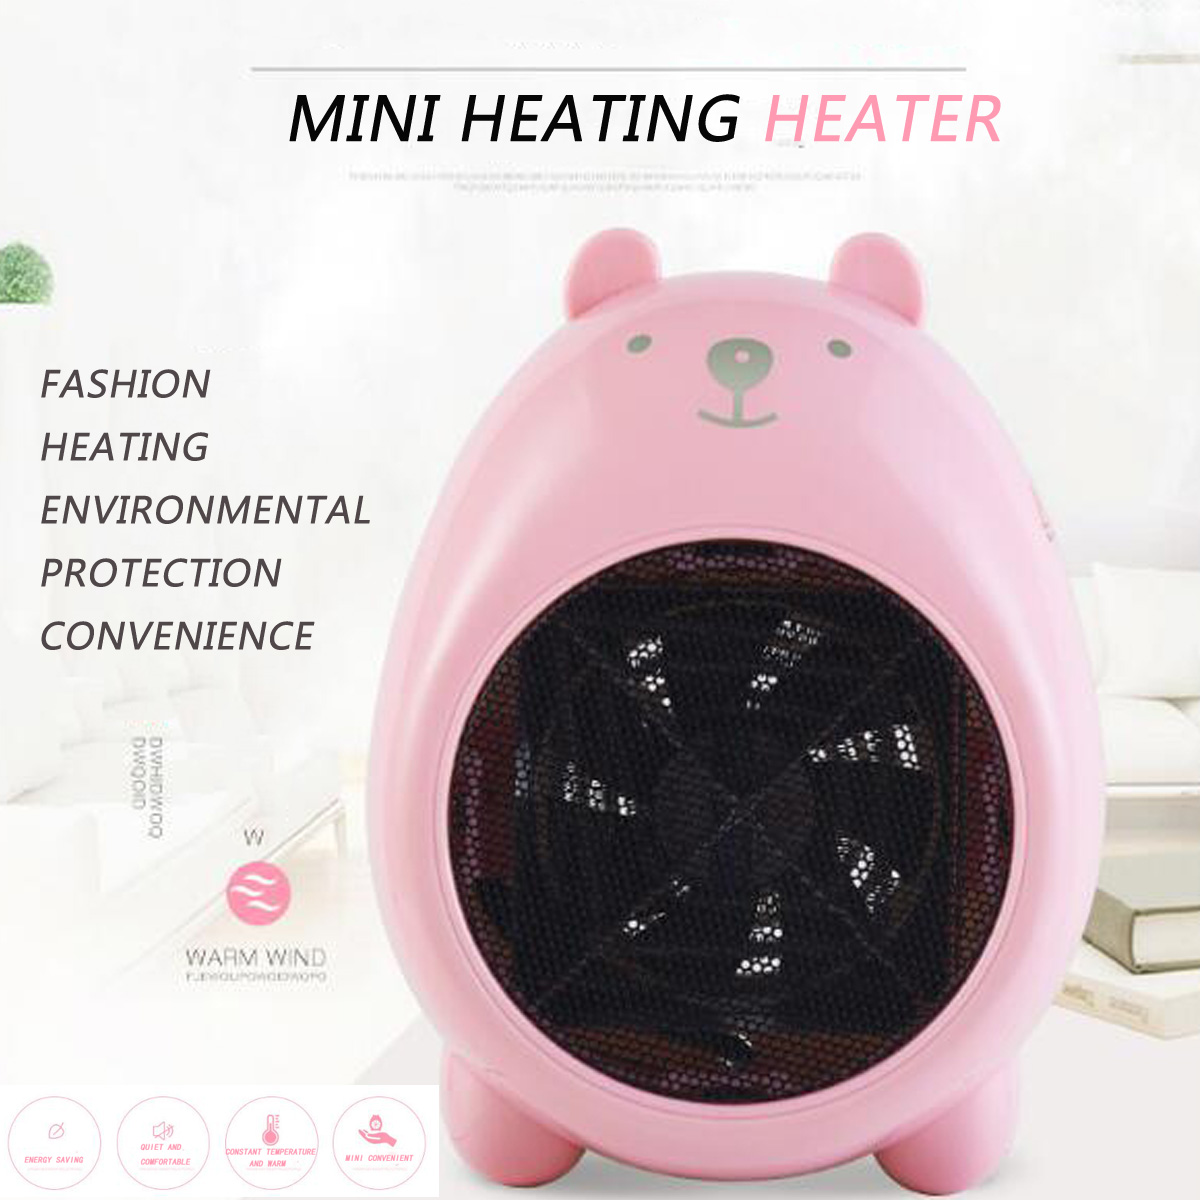 Warmtoo Mini Cartoon 400W Electric Heaters Warm hand Small Desktop Heater Cute Warm Fan For Household Office DormWarmtoo Mini Cartoon 400W Electric Heaters Warm hand Small Desktop Heater Cute Warm Fan For Household Office Dorm